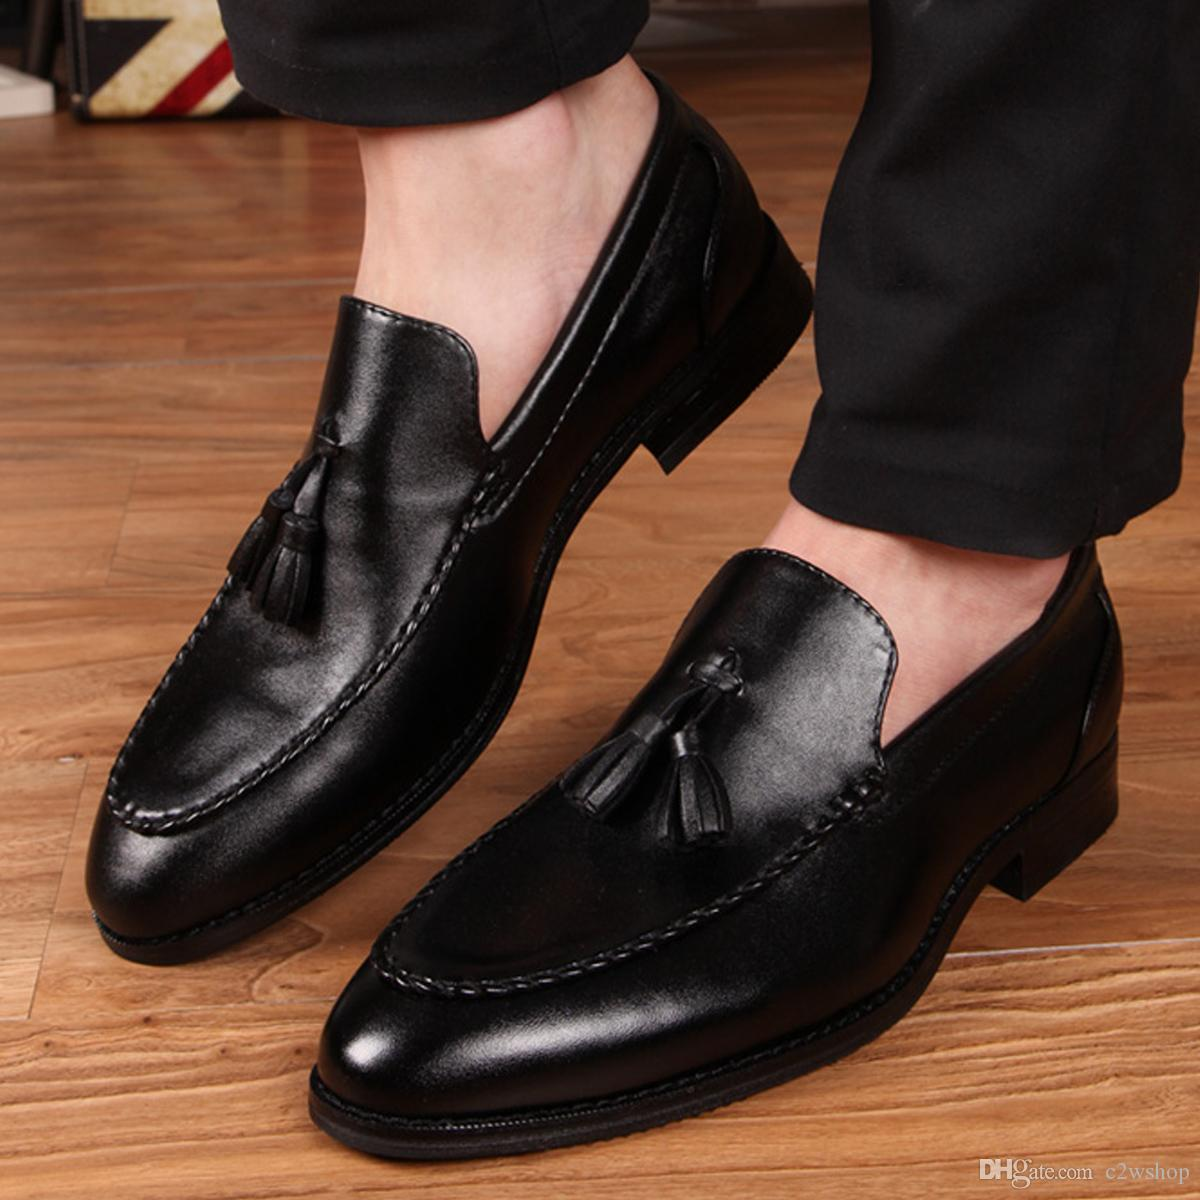 Office Shoes Online Return Policy